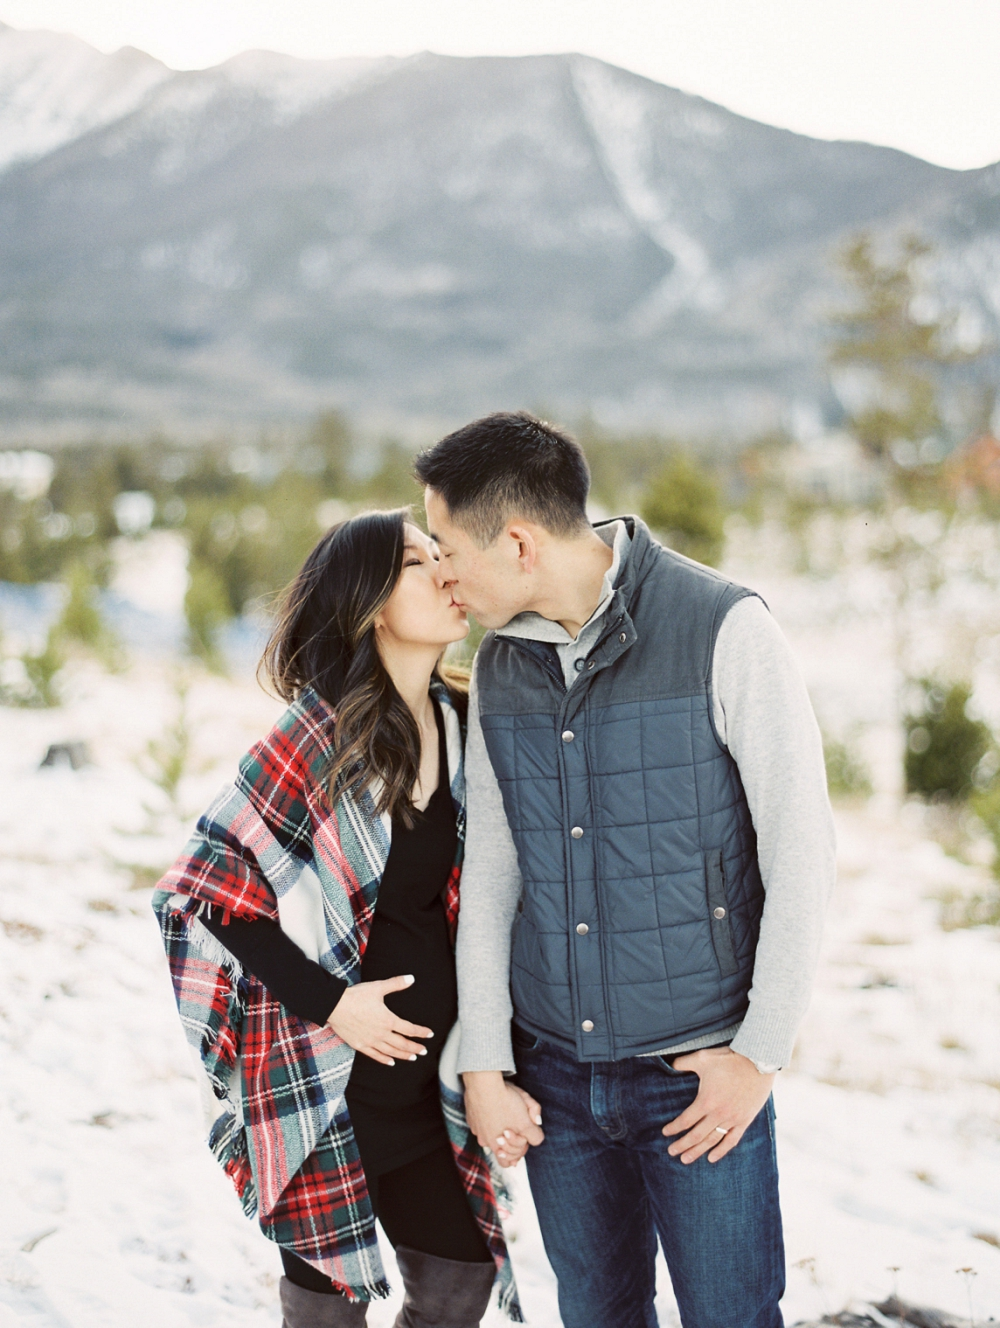 Dani-Cowan-Photography-Snowy-Colorado-Mountain-Maternity-Photoshoot14_WEB